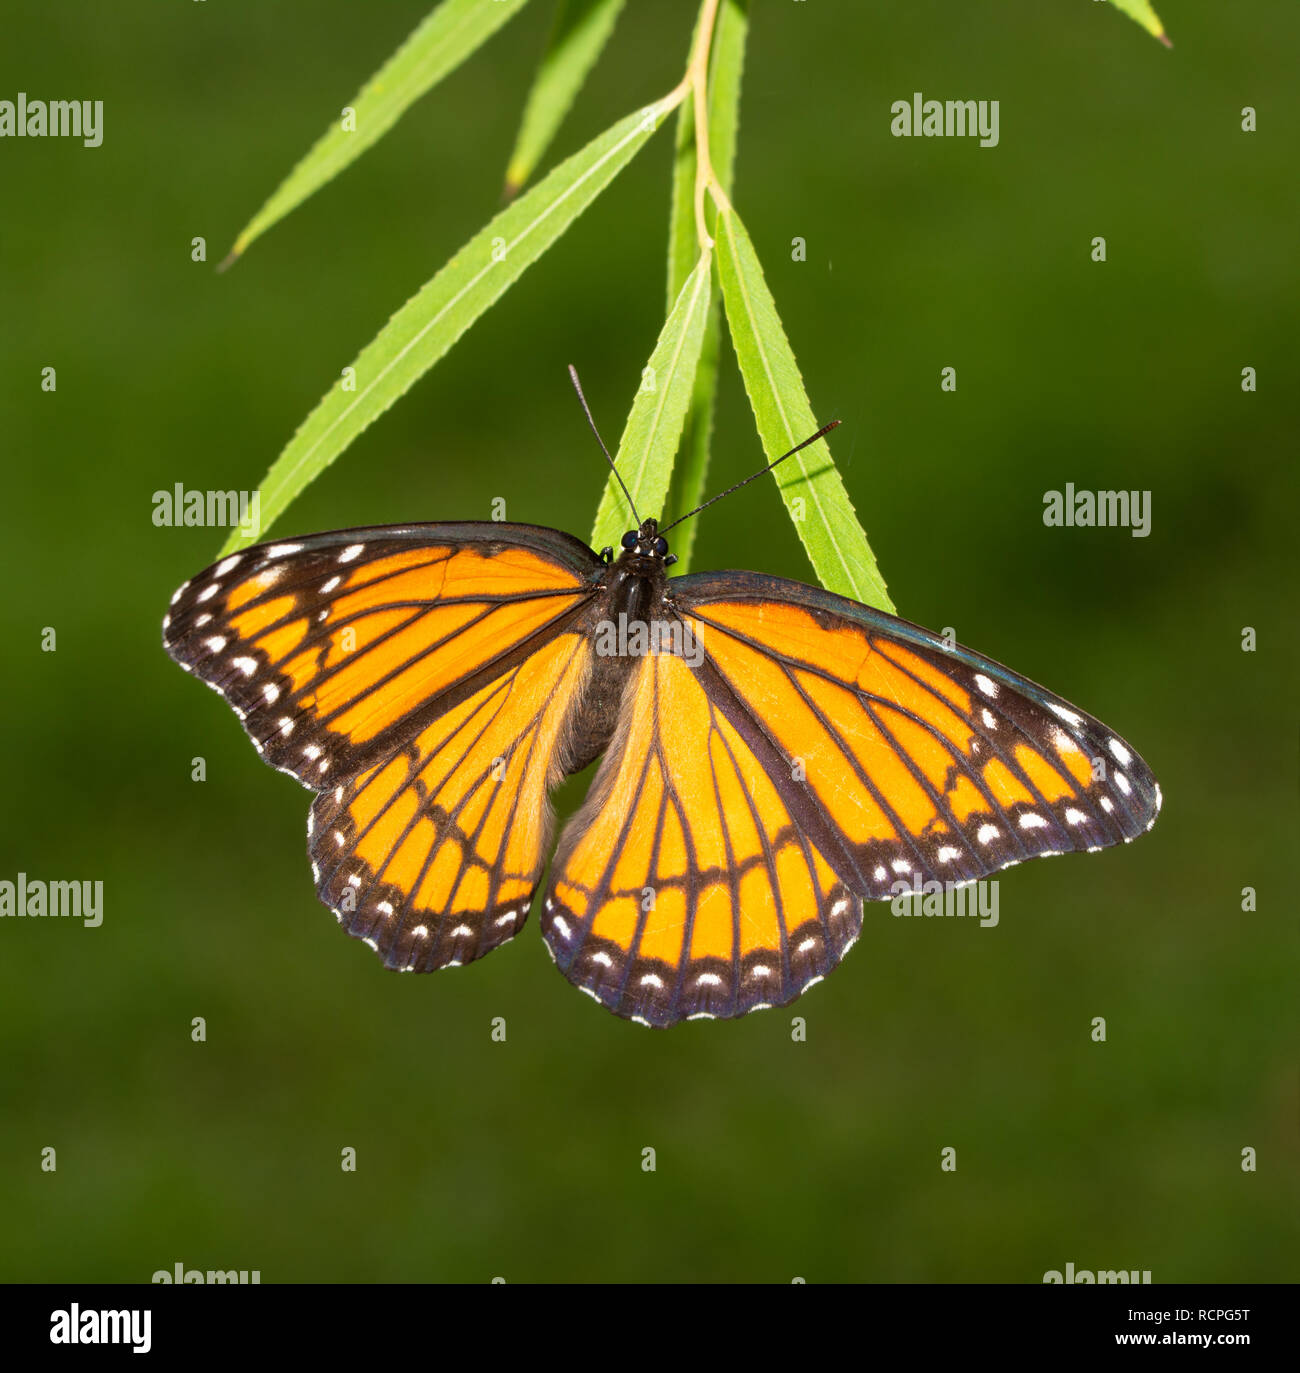 Female Viceroy butterfly laying eggs on tips of Willow tree leaves in fall - Stock Image